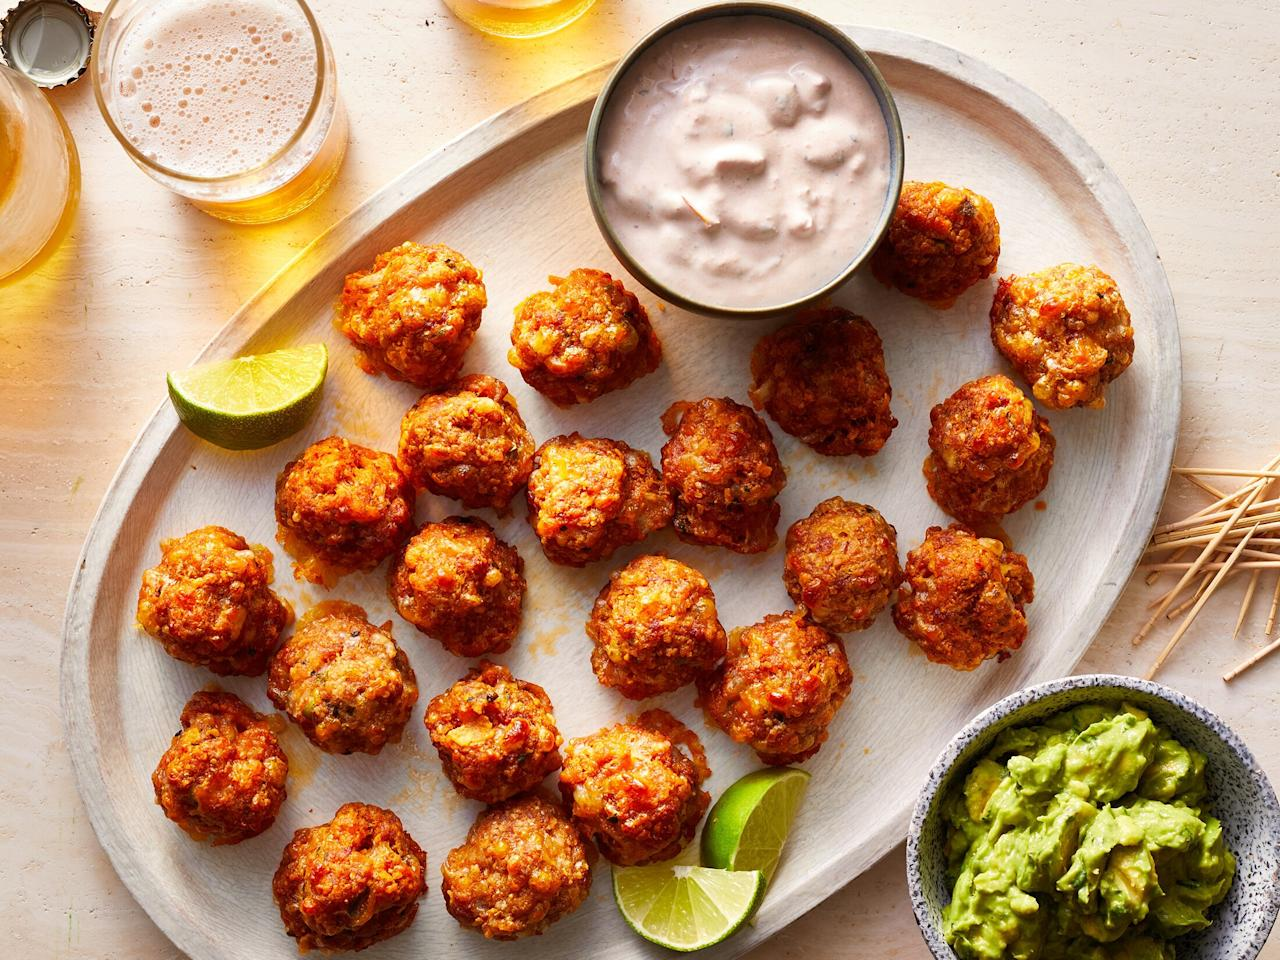 "<p>Nothing says <i>PARTY</i> like two of the all-time <a href=""https://www.myrecipes.com/course/appetizer-recipes/fast-finger-foods"">greatest finger foods </a>uniting as one. And that is exactly what is happening with these Nacho Sausage Balls. Adding chorizo, Mexican cheese, pickled jalapeño, cilantro, and crushed nacho cheese flavored Doritos to the mix gives <a href=""https://www.myrecipes.com/recipe/best-sausage-balls"">traditional sausage balls</a> a hit of spicy personality. They're perfect for <a href=""https://www.myrecipes.com/menus/best-tailgating-recipes"">tailgating</a> or <a href=""https://www.myrecipes.com/holidays-and-occasions/christmas-recipes/christmas-appetizers-recipes"">holiday parties</a>—plus, these next-level sausage balls can be made ahead of time and frozen for up to 1 month. For ease, form the sausage ball and freeze them in a single layer on a baking sheet; once frozen, transfer them to a freezer-safe container. When you're ready to serve, pop them straight from the freezer to the oven and bake for 30-35 minutes. Serve your nacho sausage balls with favorite nacho condiments, like sour cream, salsa, and <a href=""https://www.myrecipes.com/recipe/guacamole-14"">guacamole</a>, for dipping. </p> <p><a href=""https://www.myrecipes.com/recipe/nacho-sausage-balls"">Nacho Sausage Balls Recipe</a></p>"